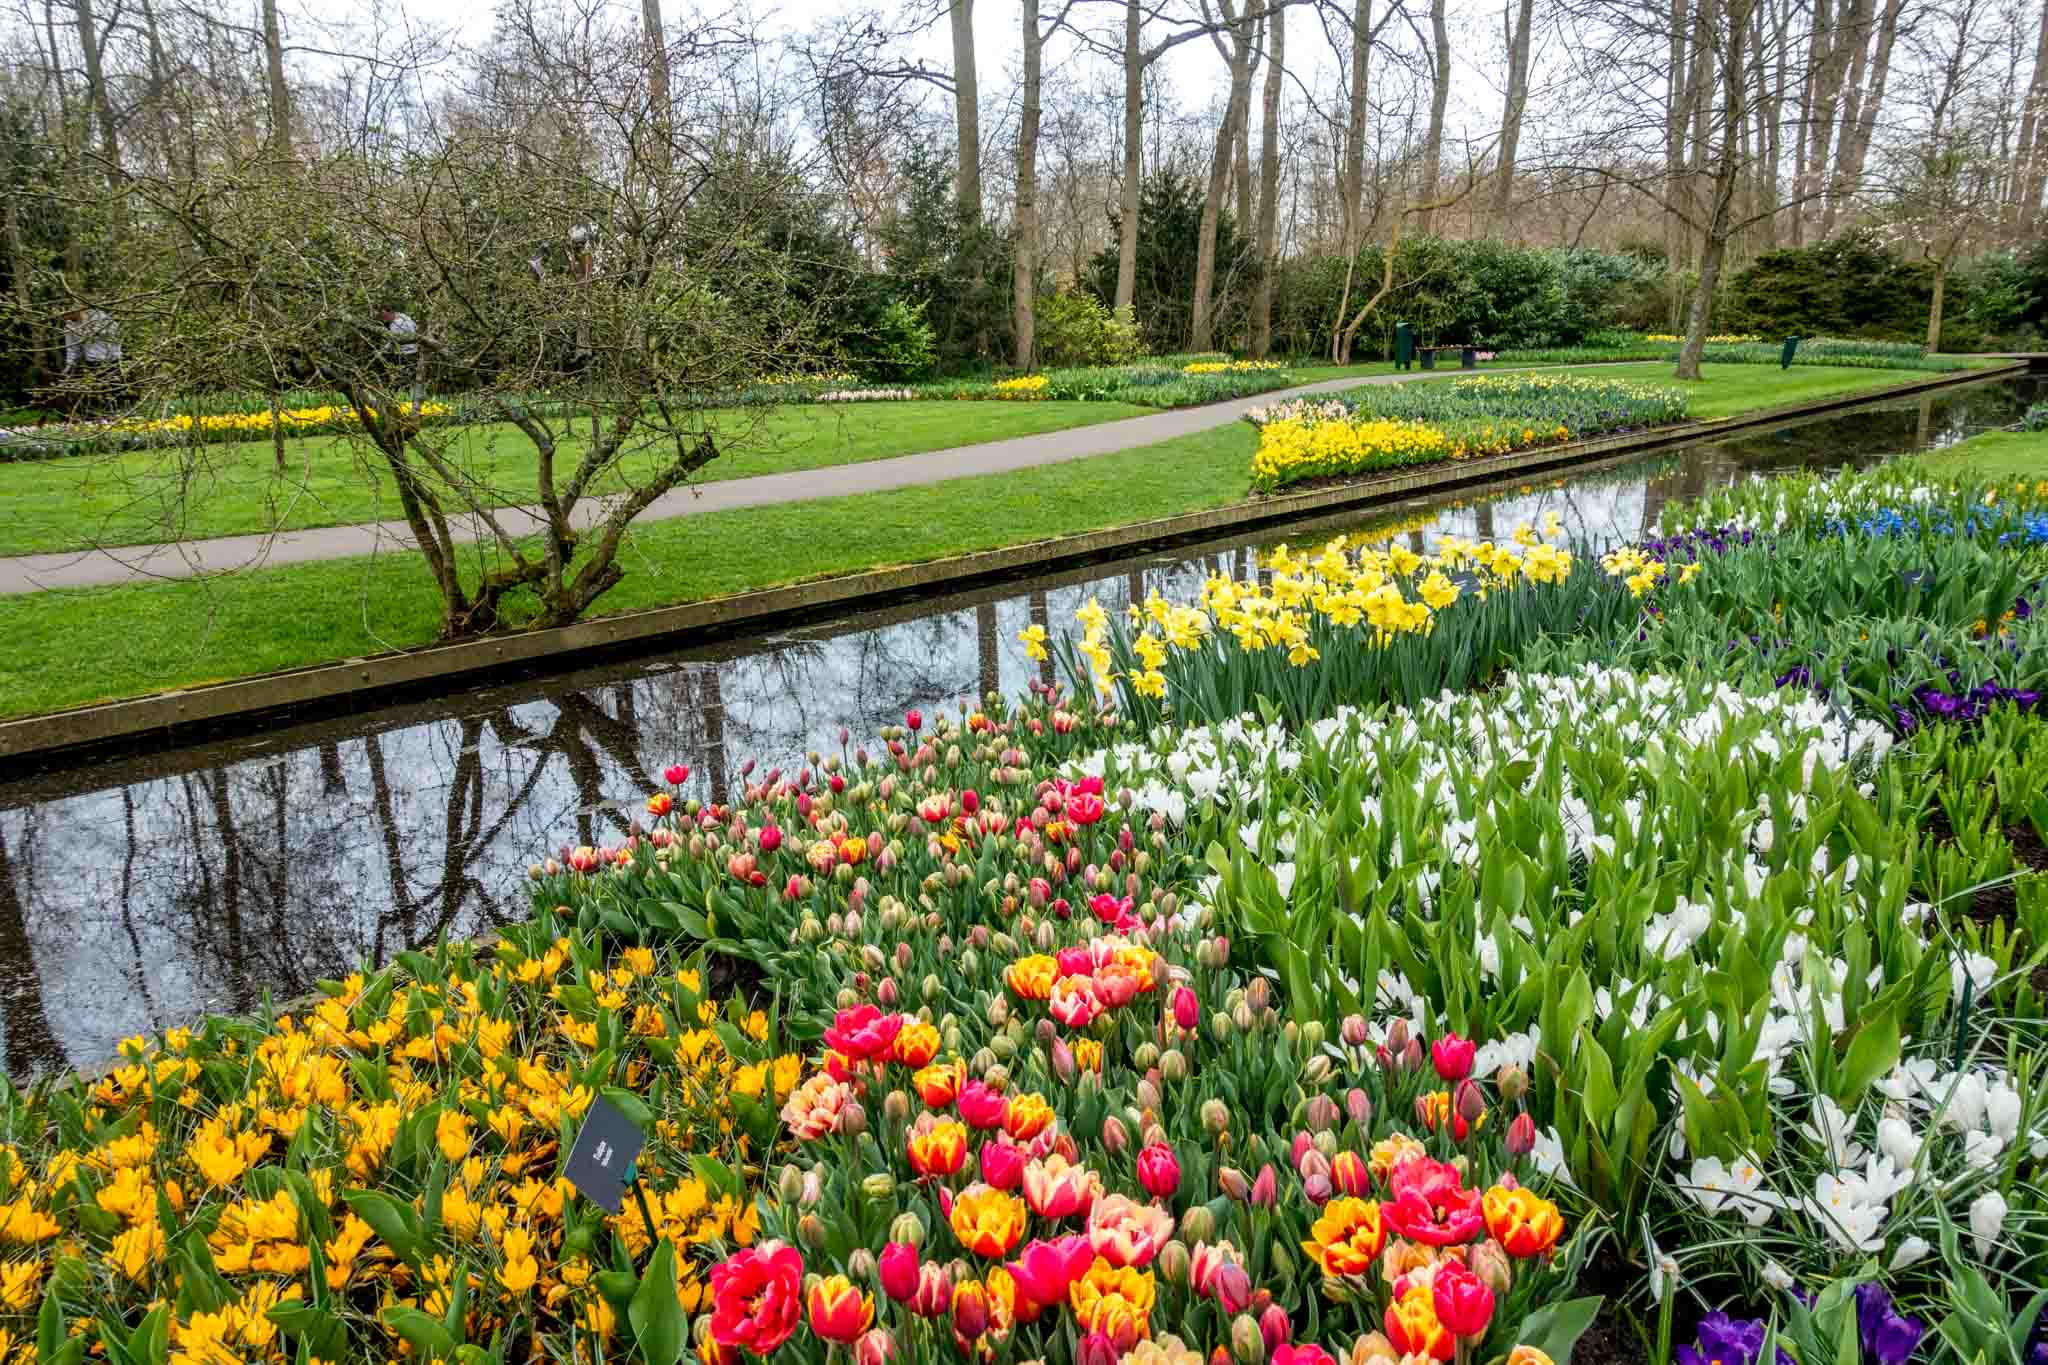 Tulips and flowers beside a canal